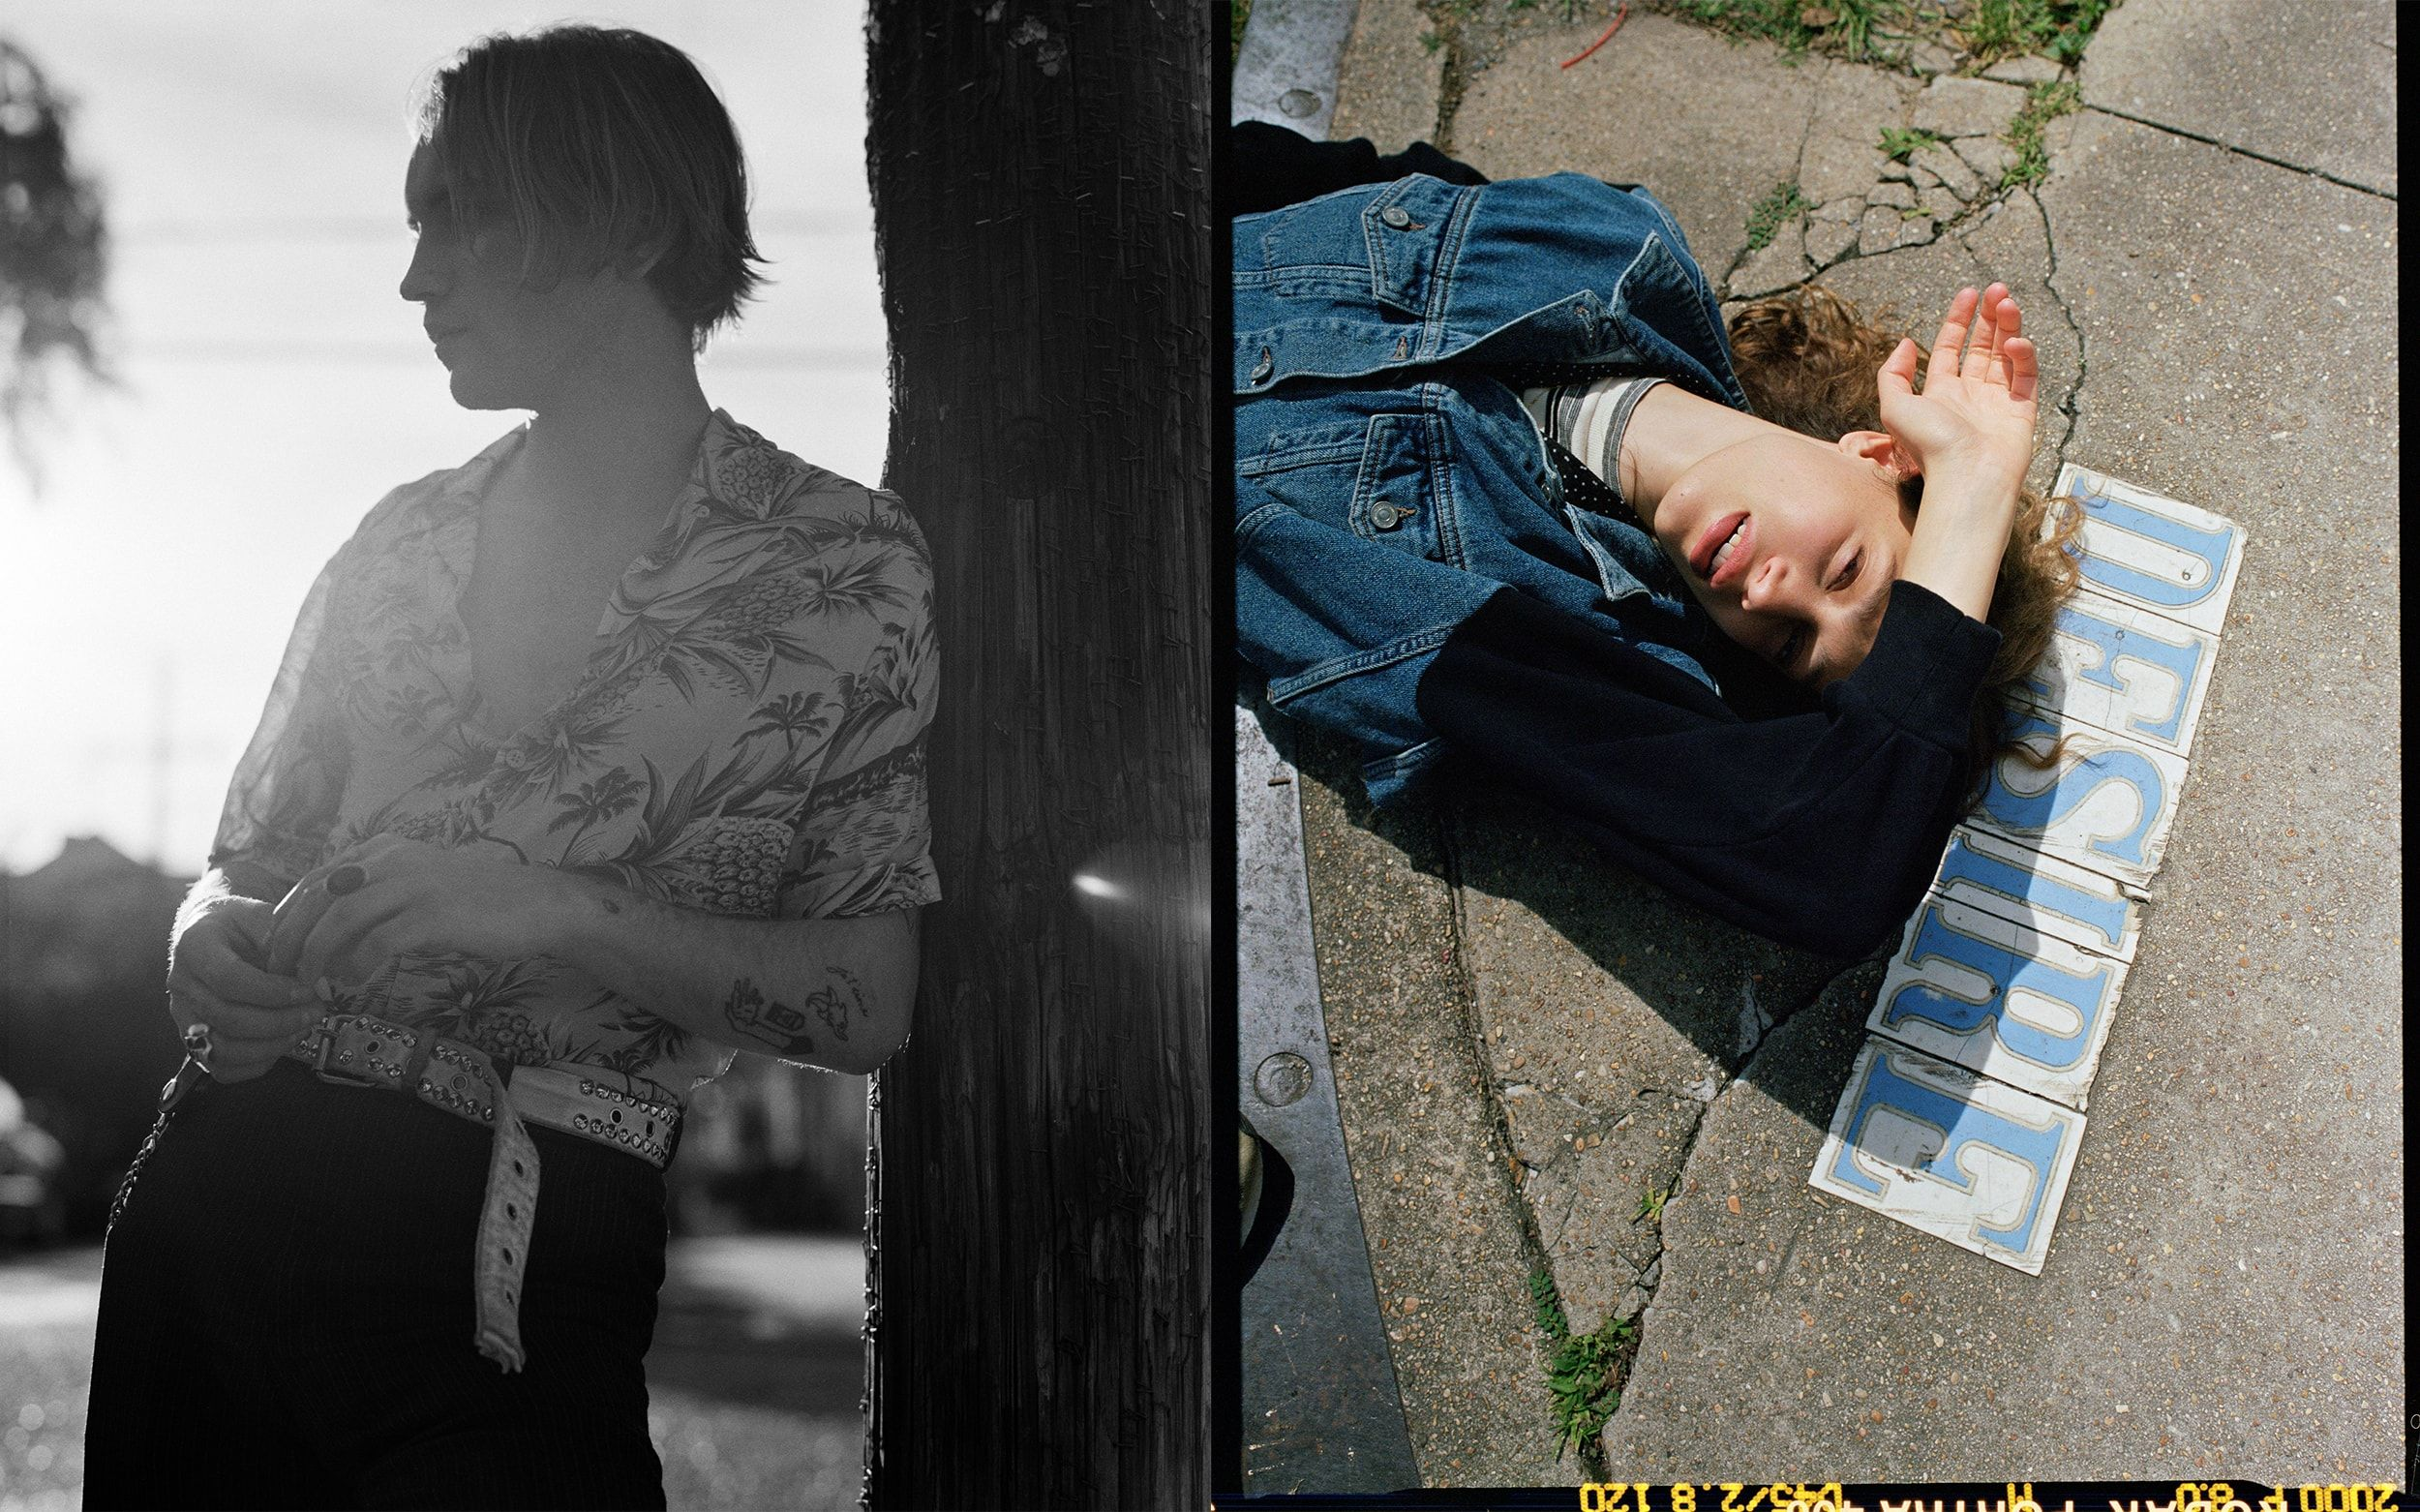 Two photographs from our Lost In New Orleans campaign, depicting a black-and-white image of a young man leaning against a tree wearing a printed Hawaiian shirt, and a photograph of a young woman lying in the street wearing a denim jacket.